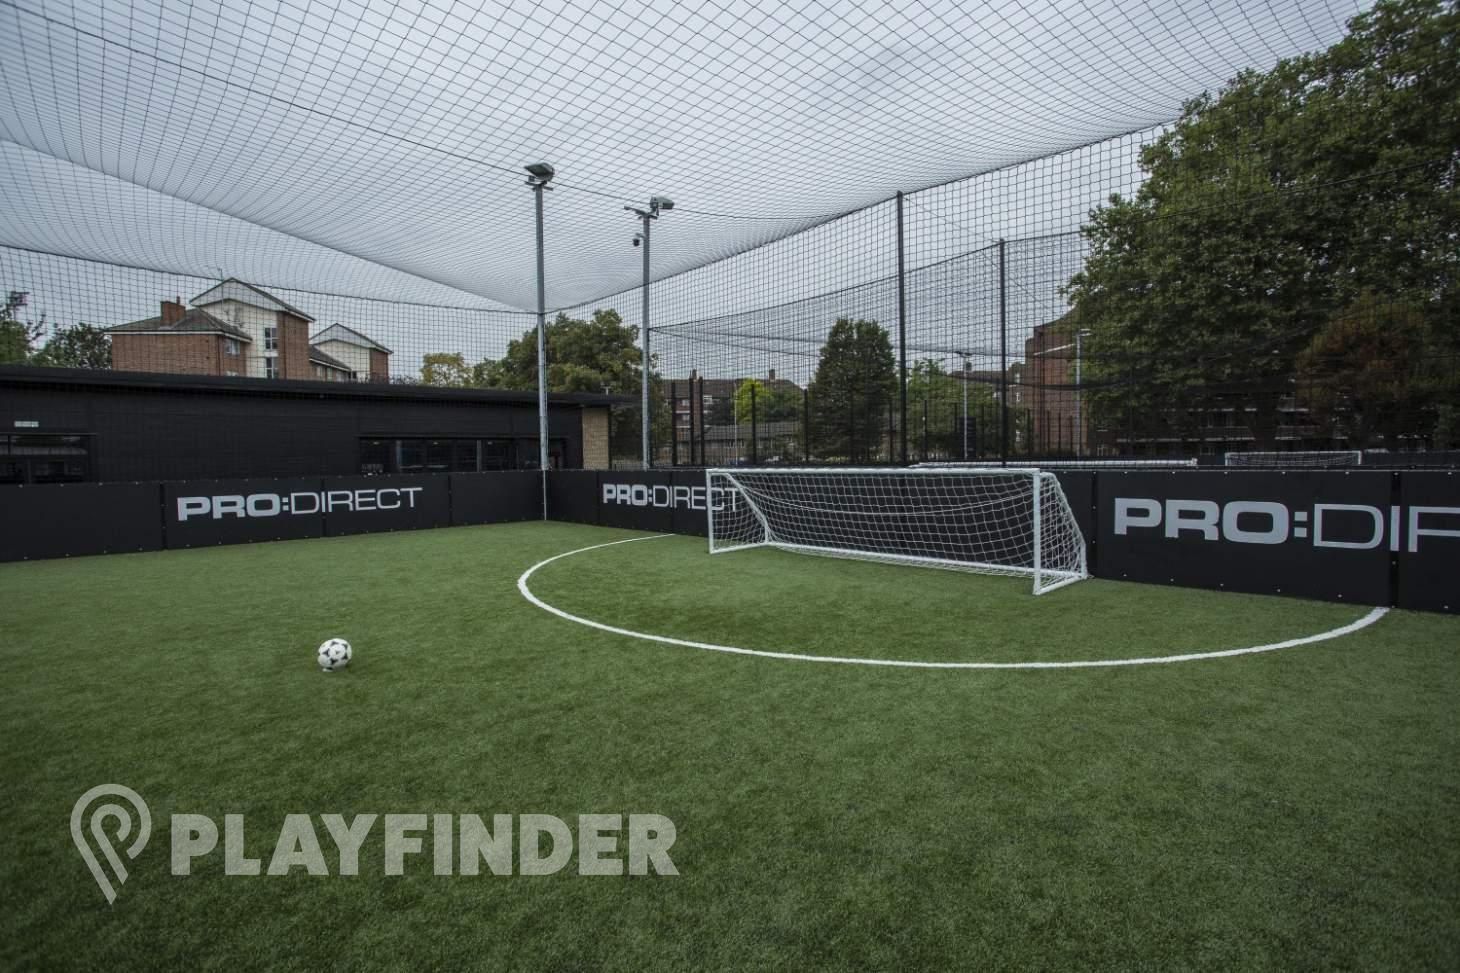 PlayFootball Shepherd's Bush 5 a side | 3G Astroturf football pitch